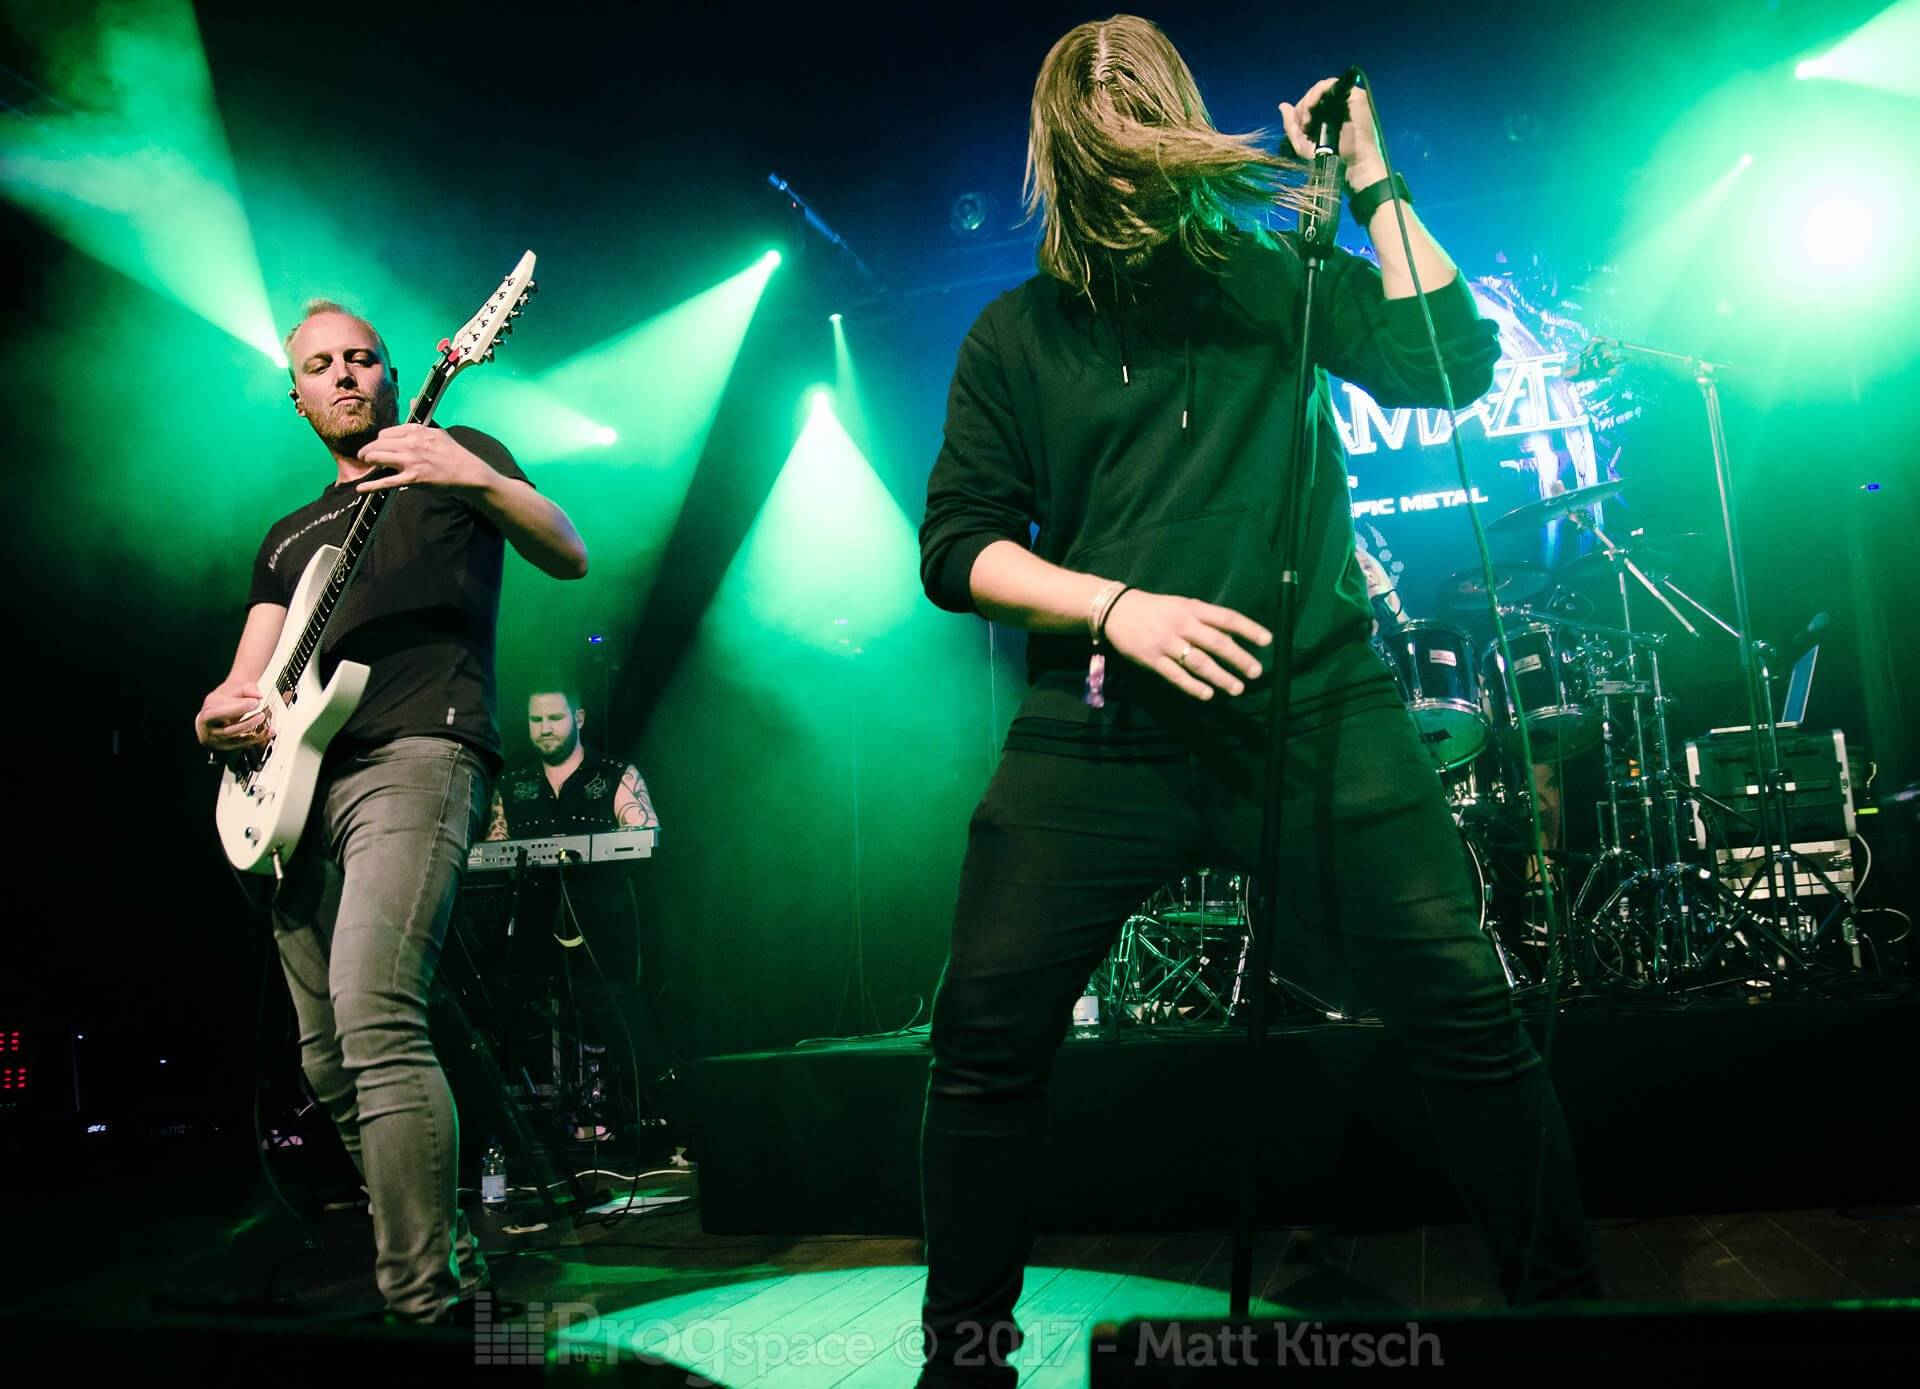 ProgPower Europe 2017: Pyramaze